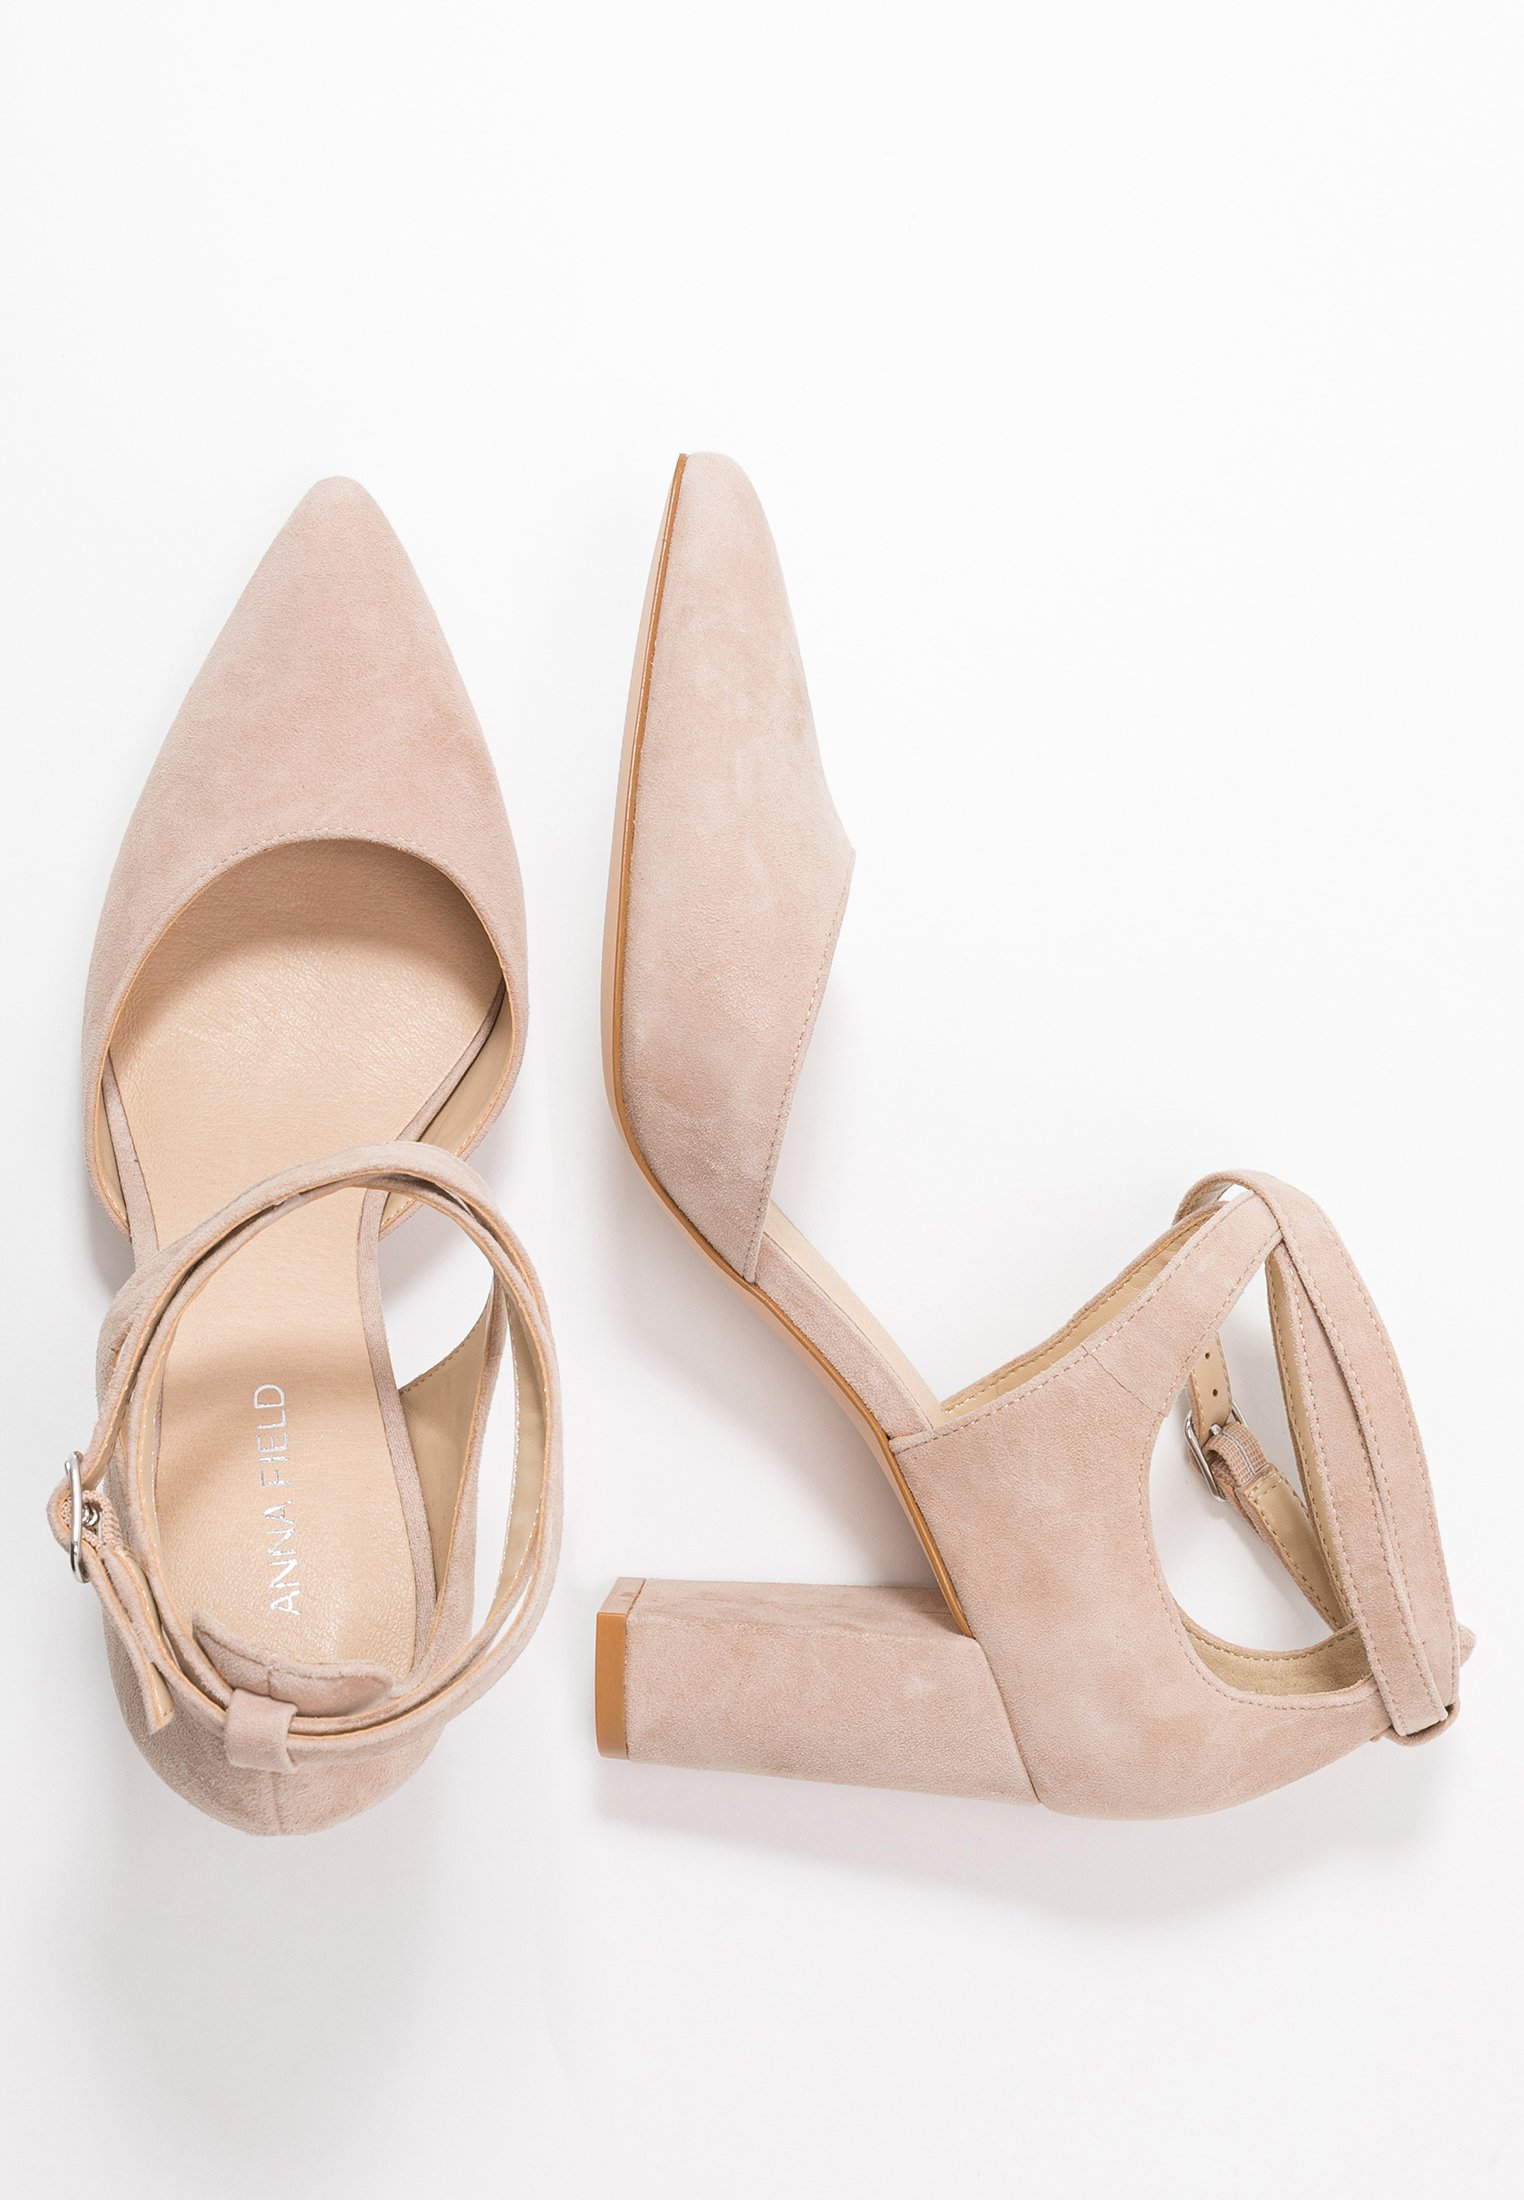 Anna Field Leather Classic Heels - Højhælede Pumps Nude